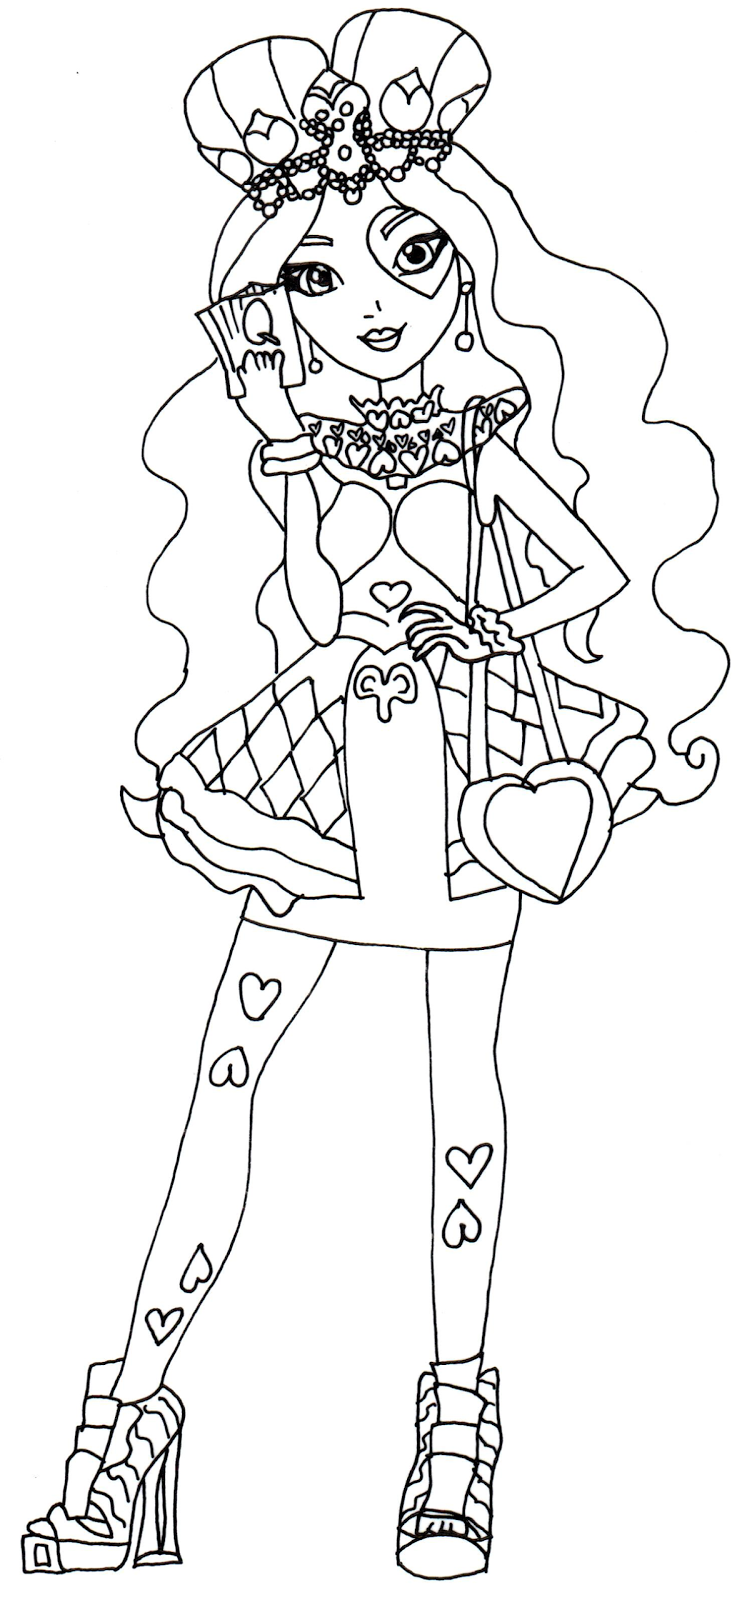 Free Printable Ever After High Coloring Pages: Lizzie